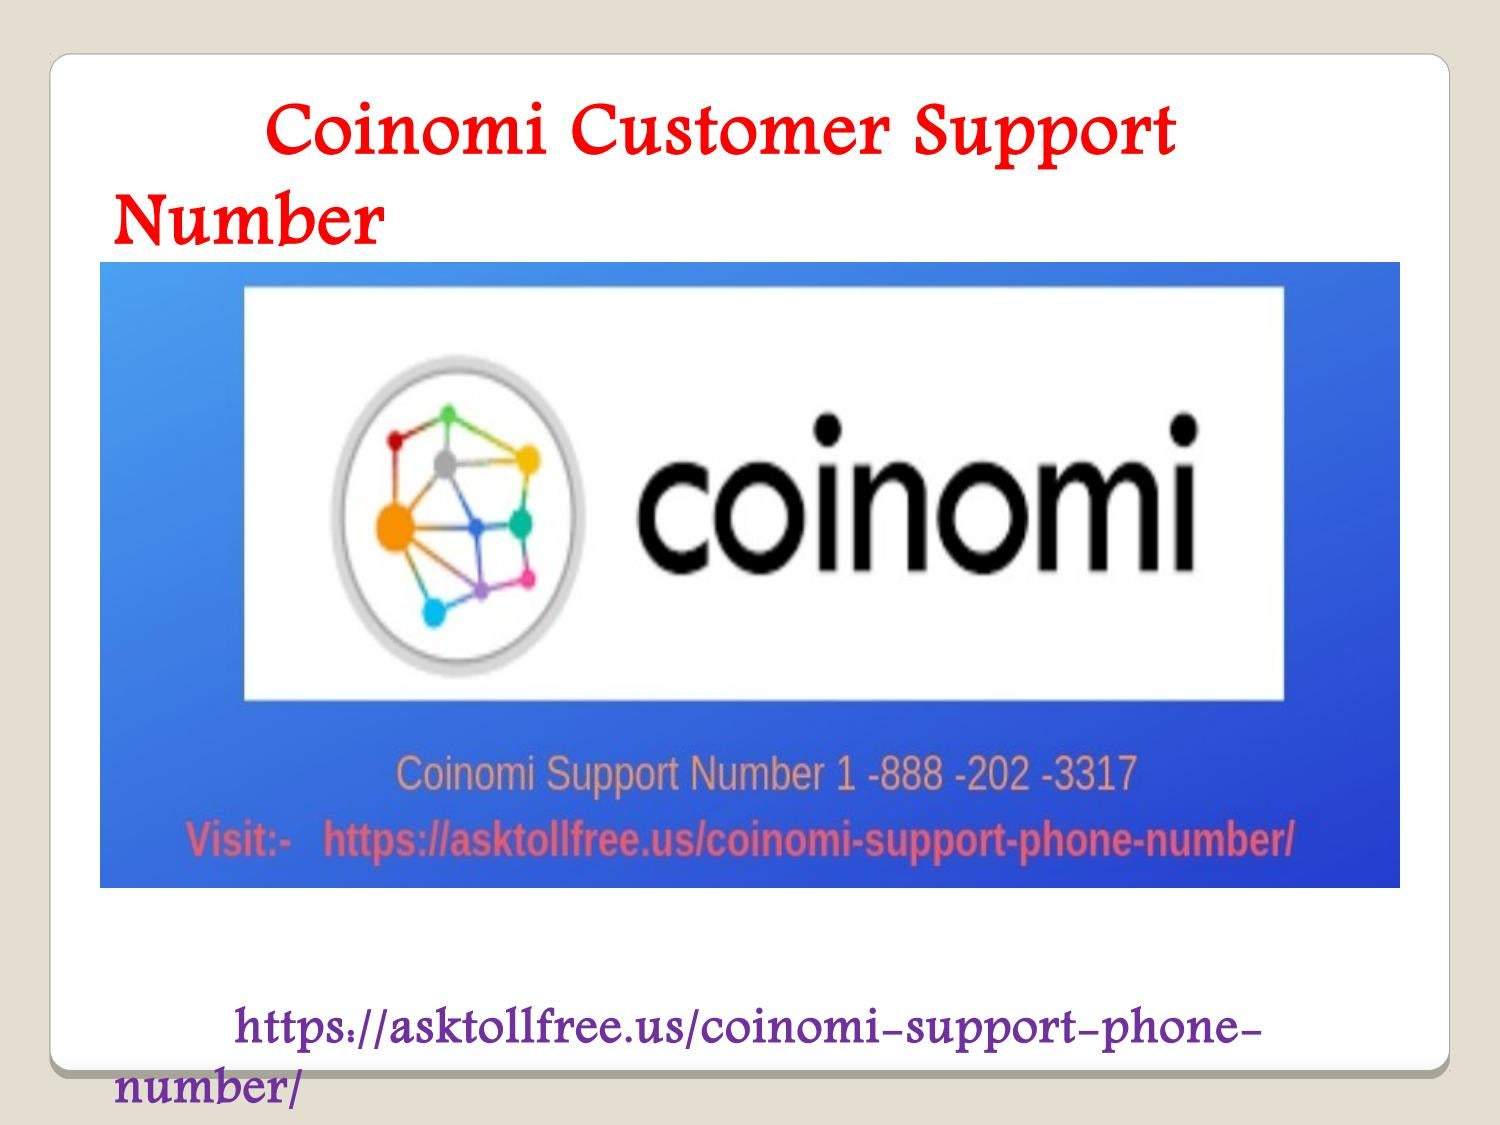 Coinomi Customer Support Number 1-888-202-3317 by